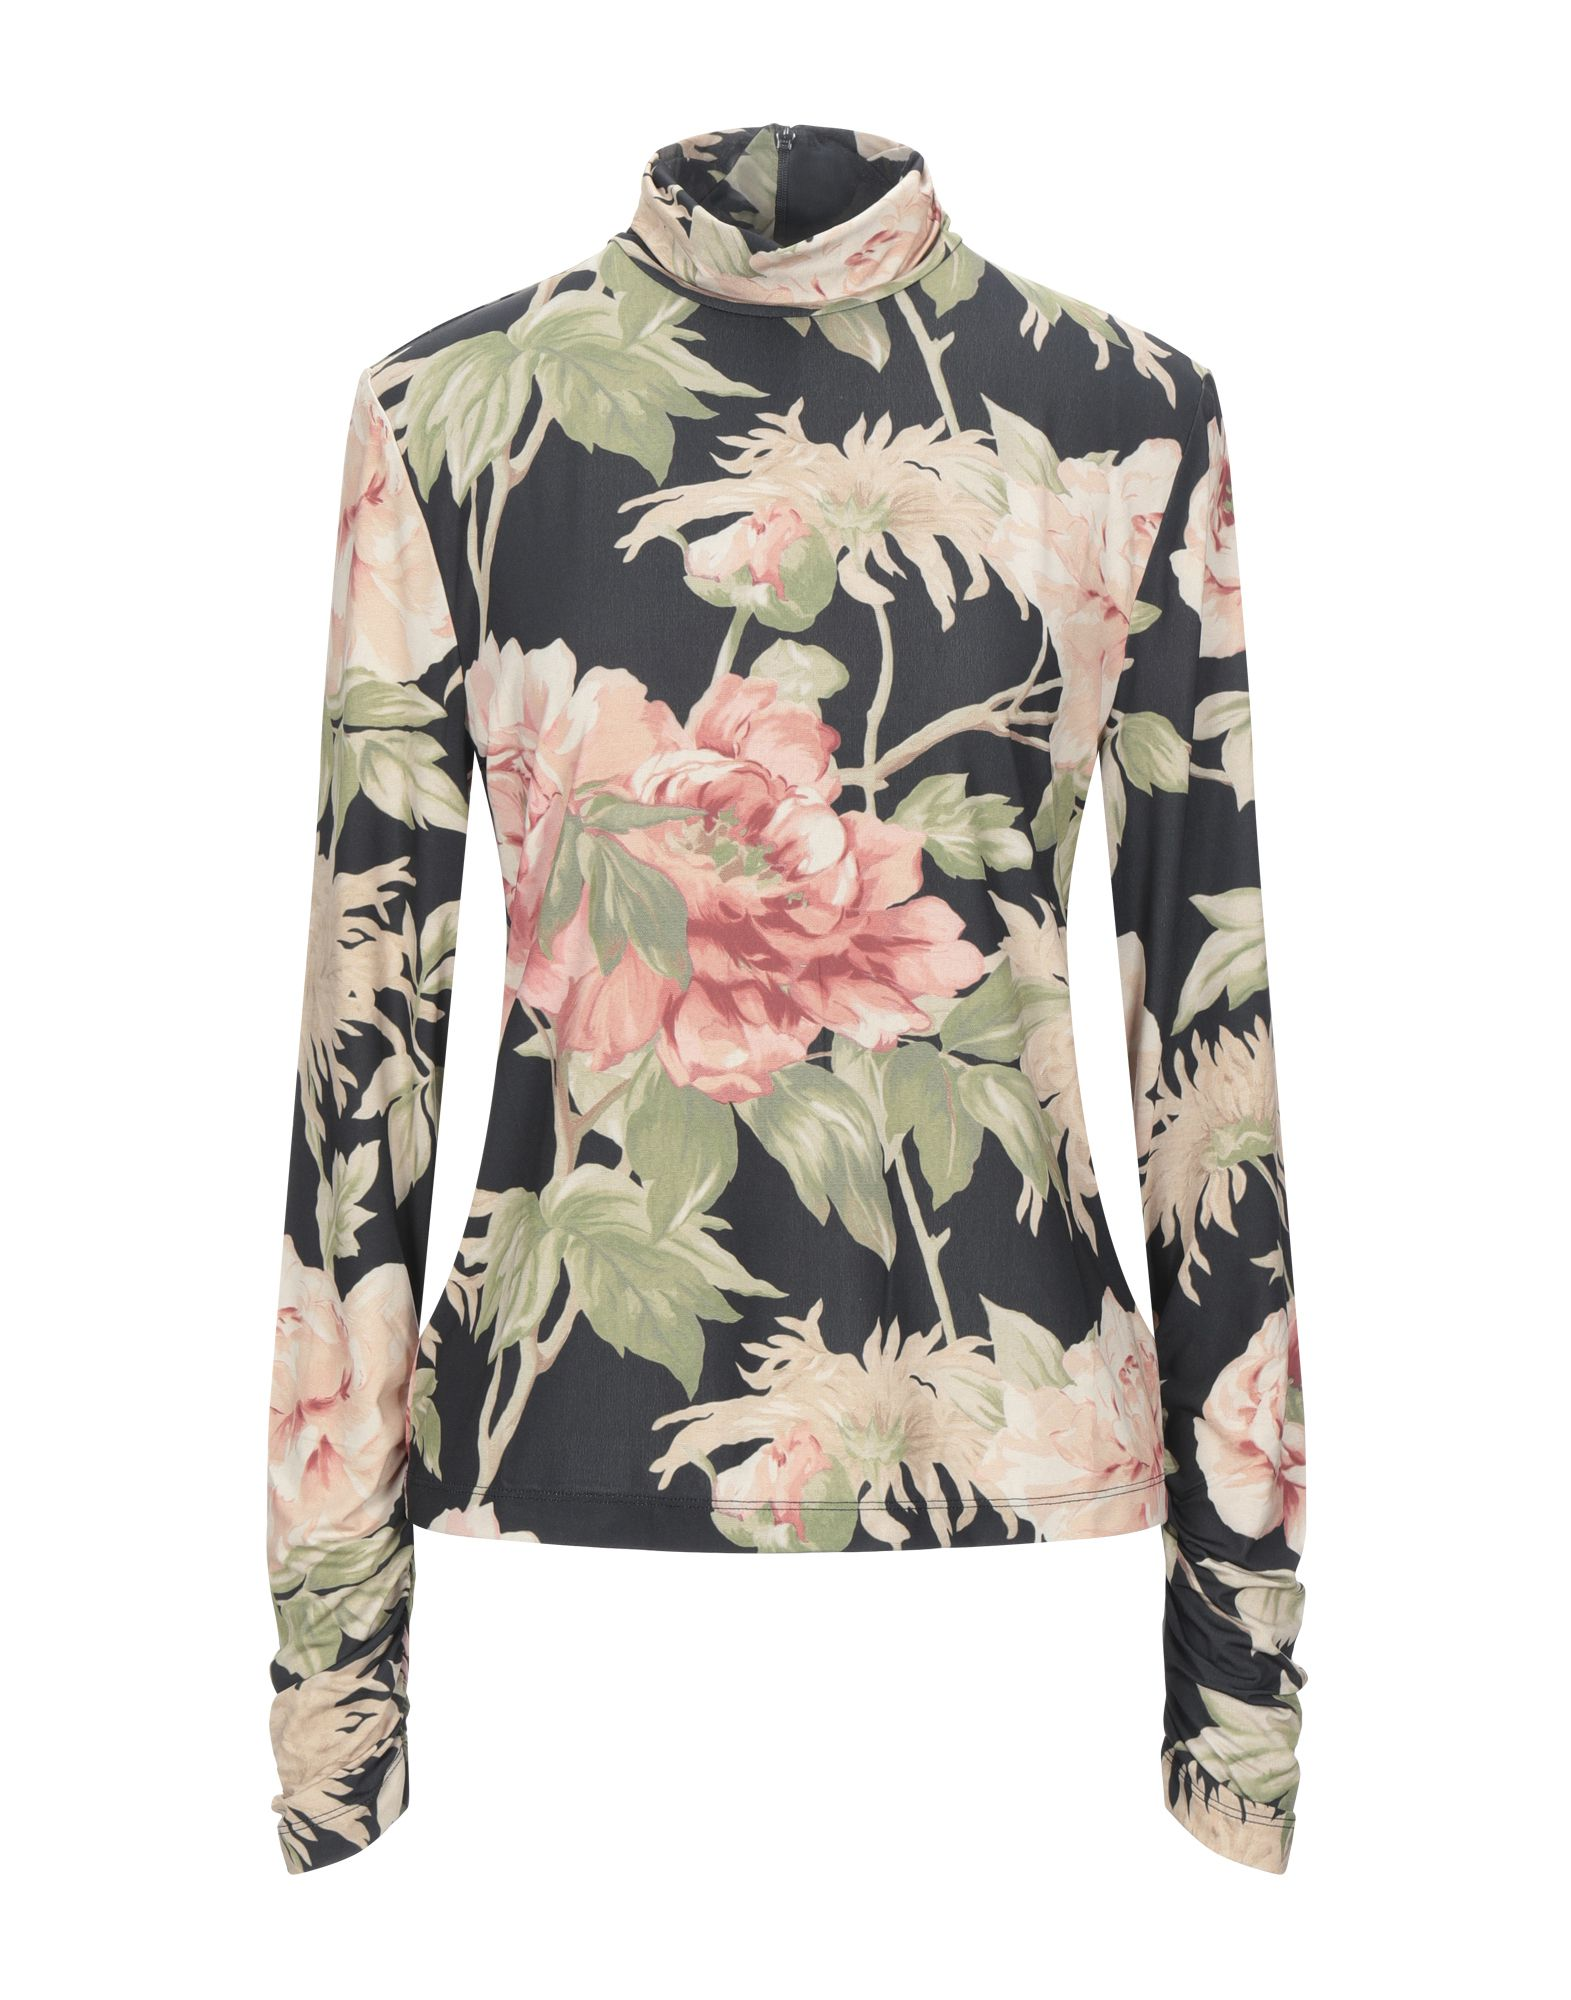 ZIMMERMANN T-shirts. jersey, frills, floral design, turtleneck, long sleeves, rear closure, zipper closure, no pockets, stretch. 92% Polyester, 8% Elastane